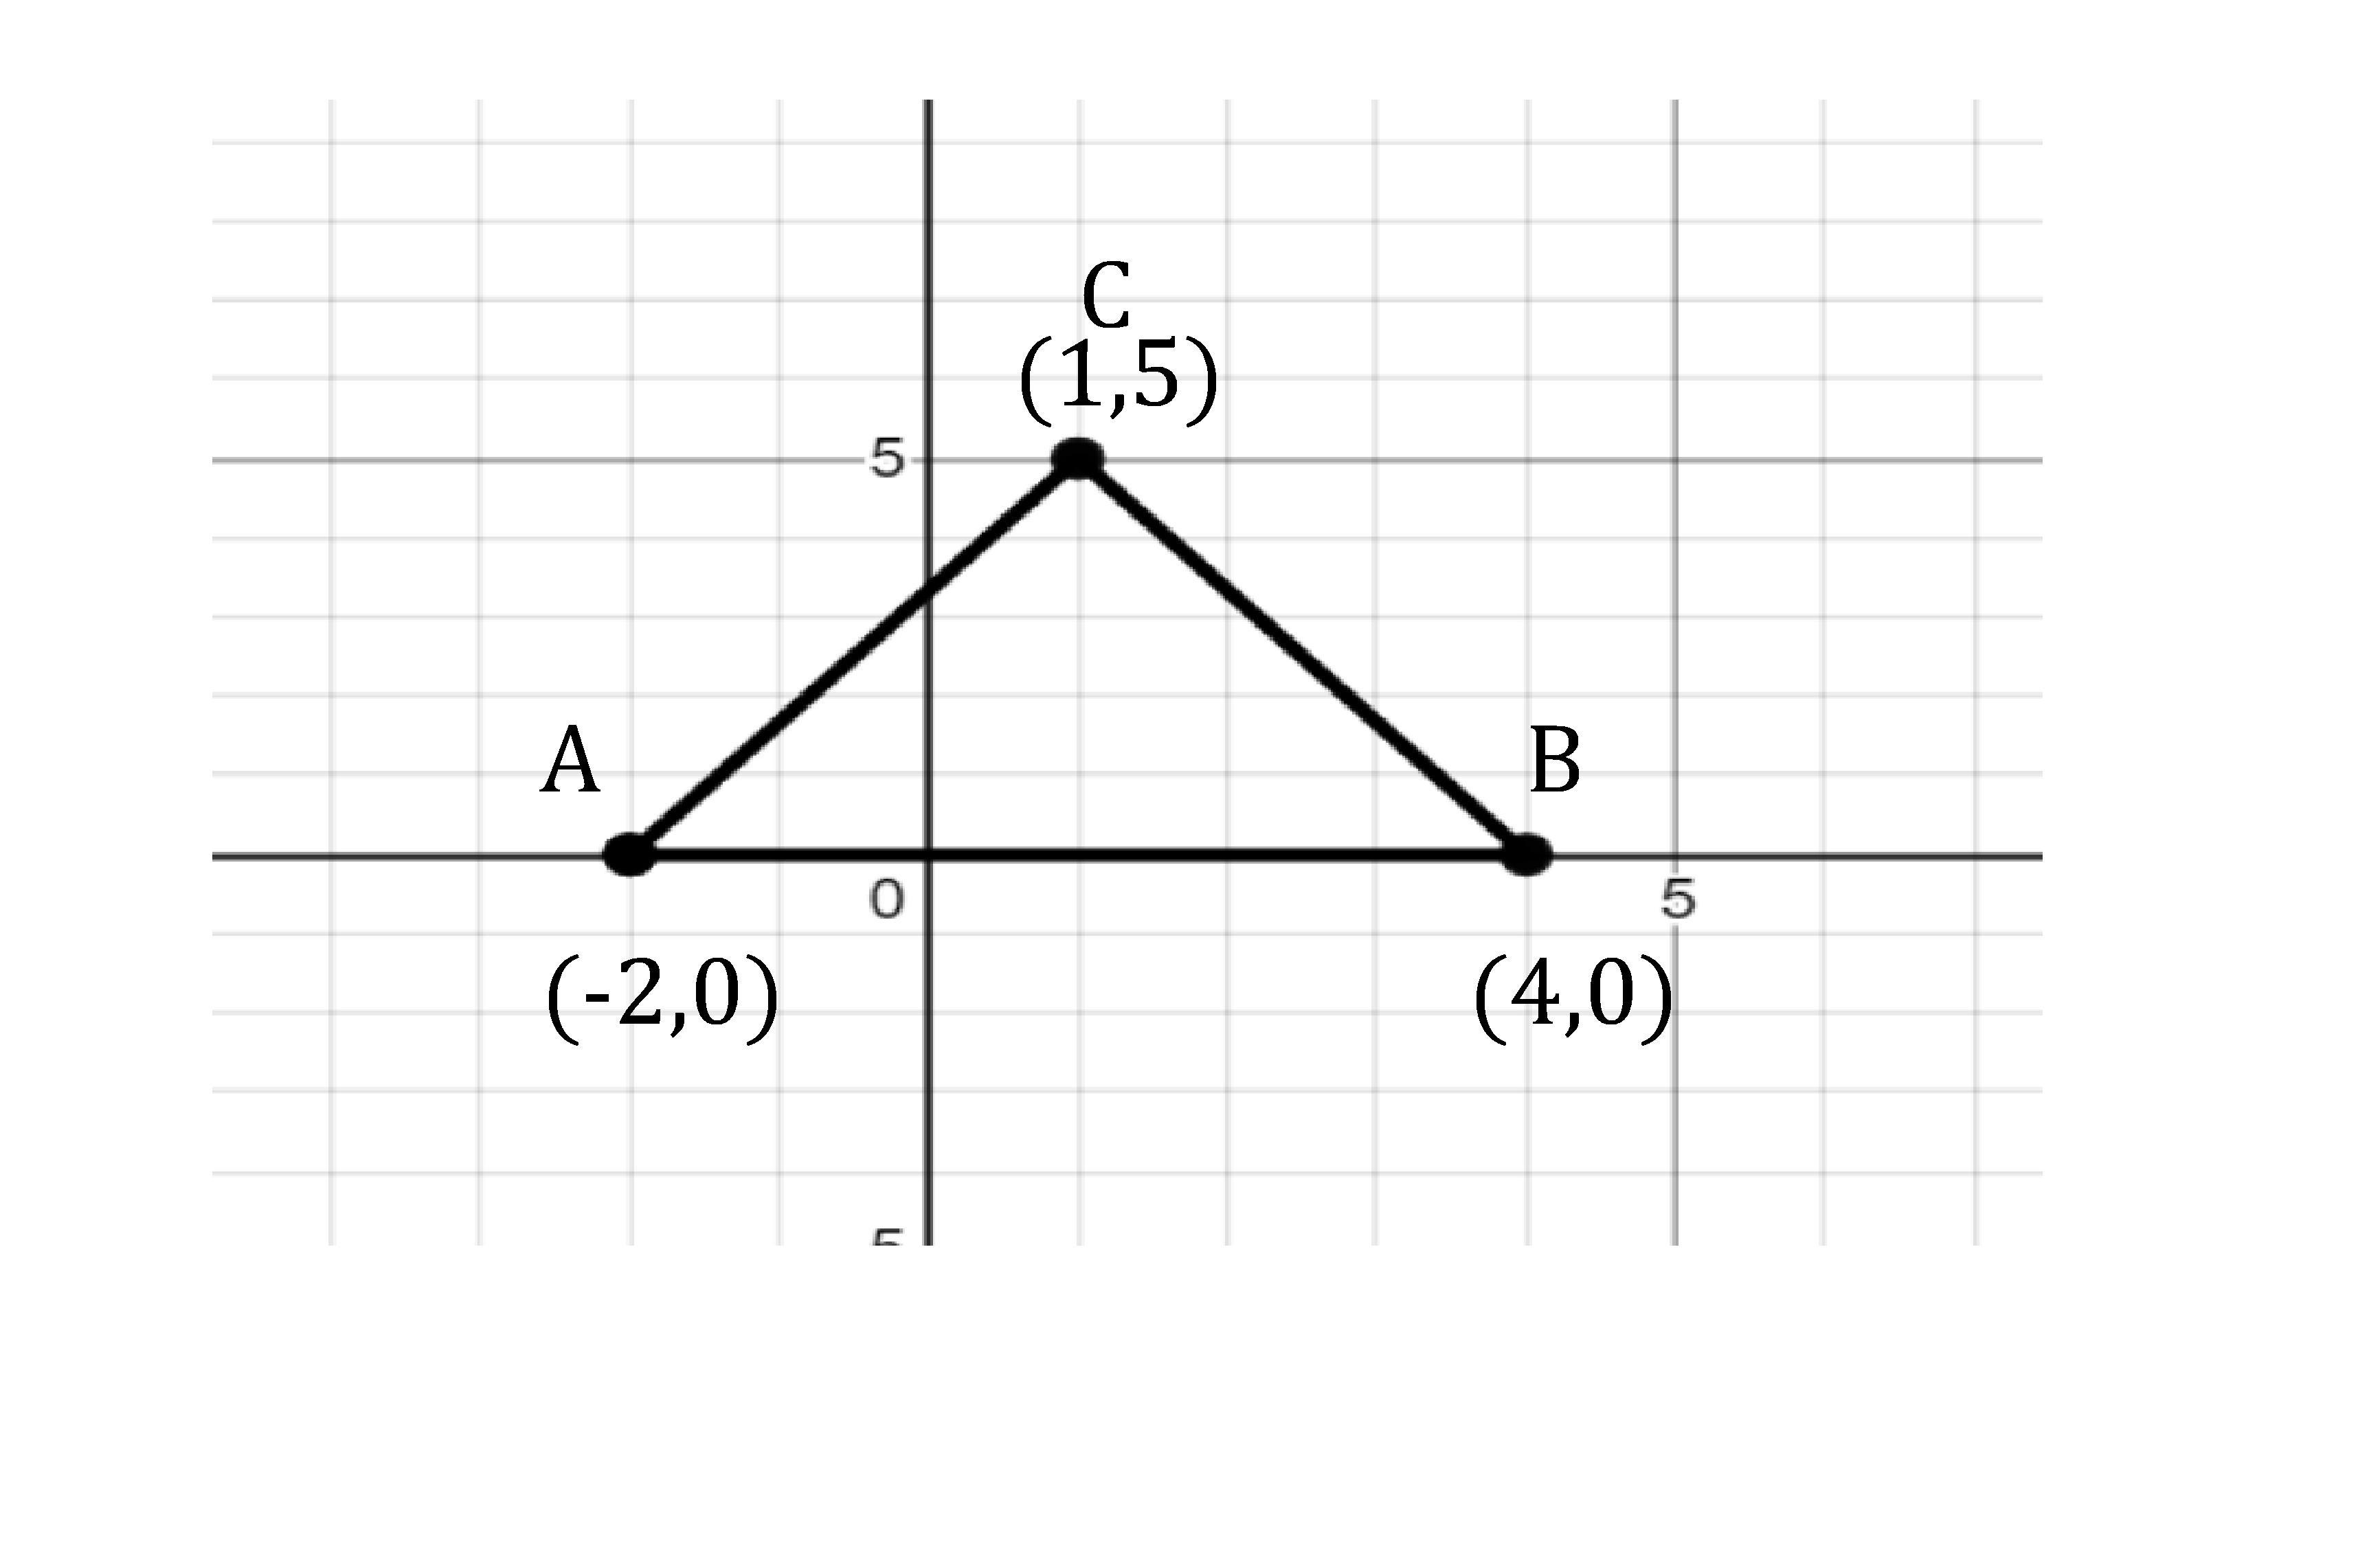 draw a triangle ABC on graph paper having the coordinates